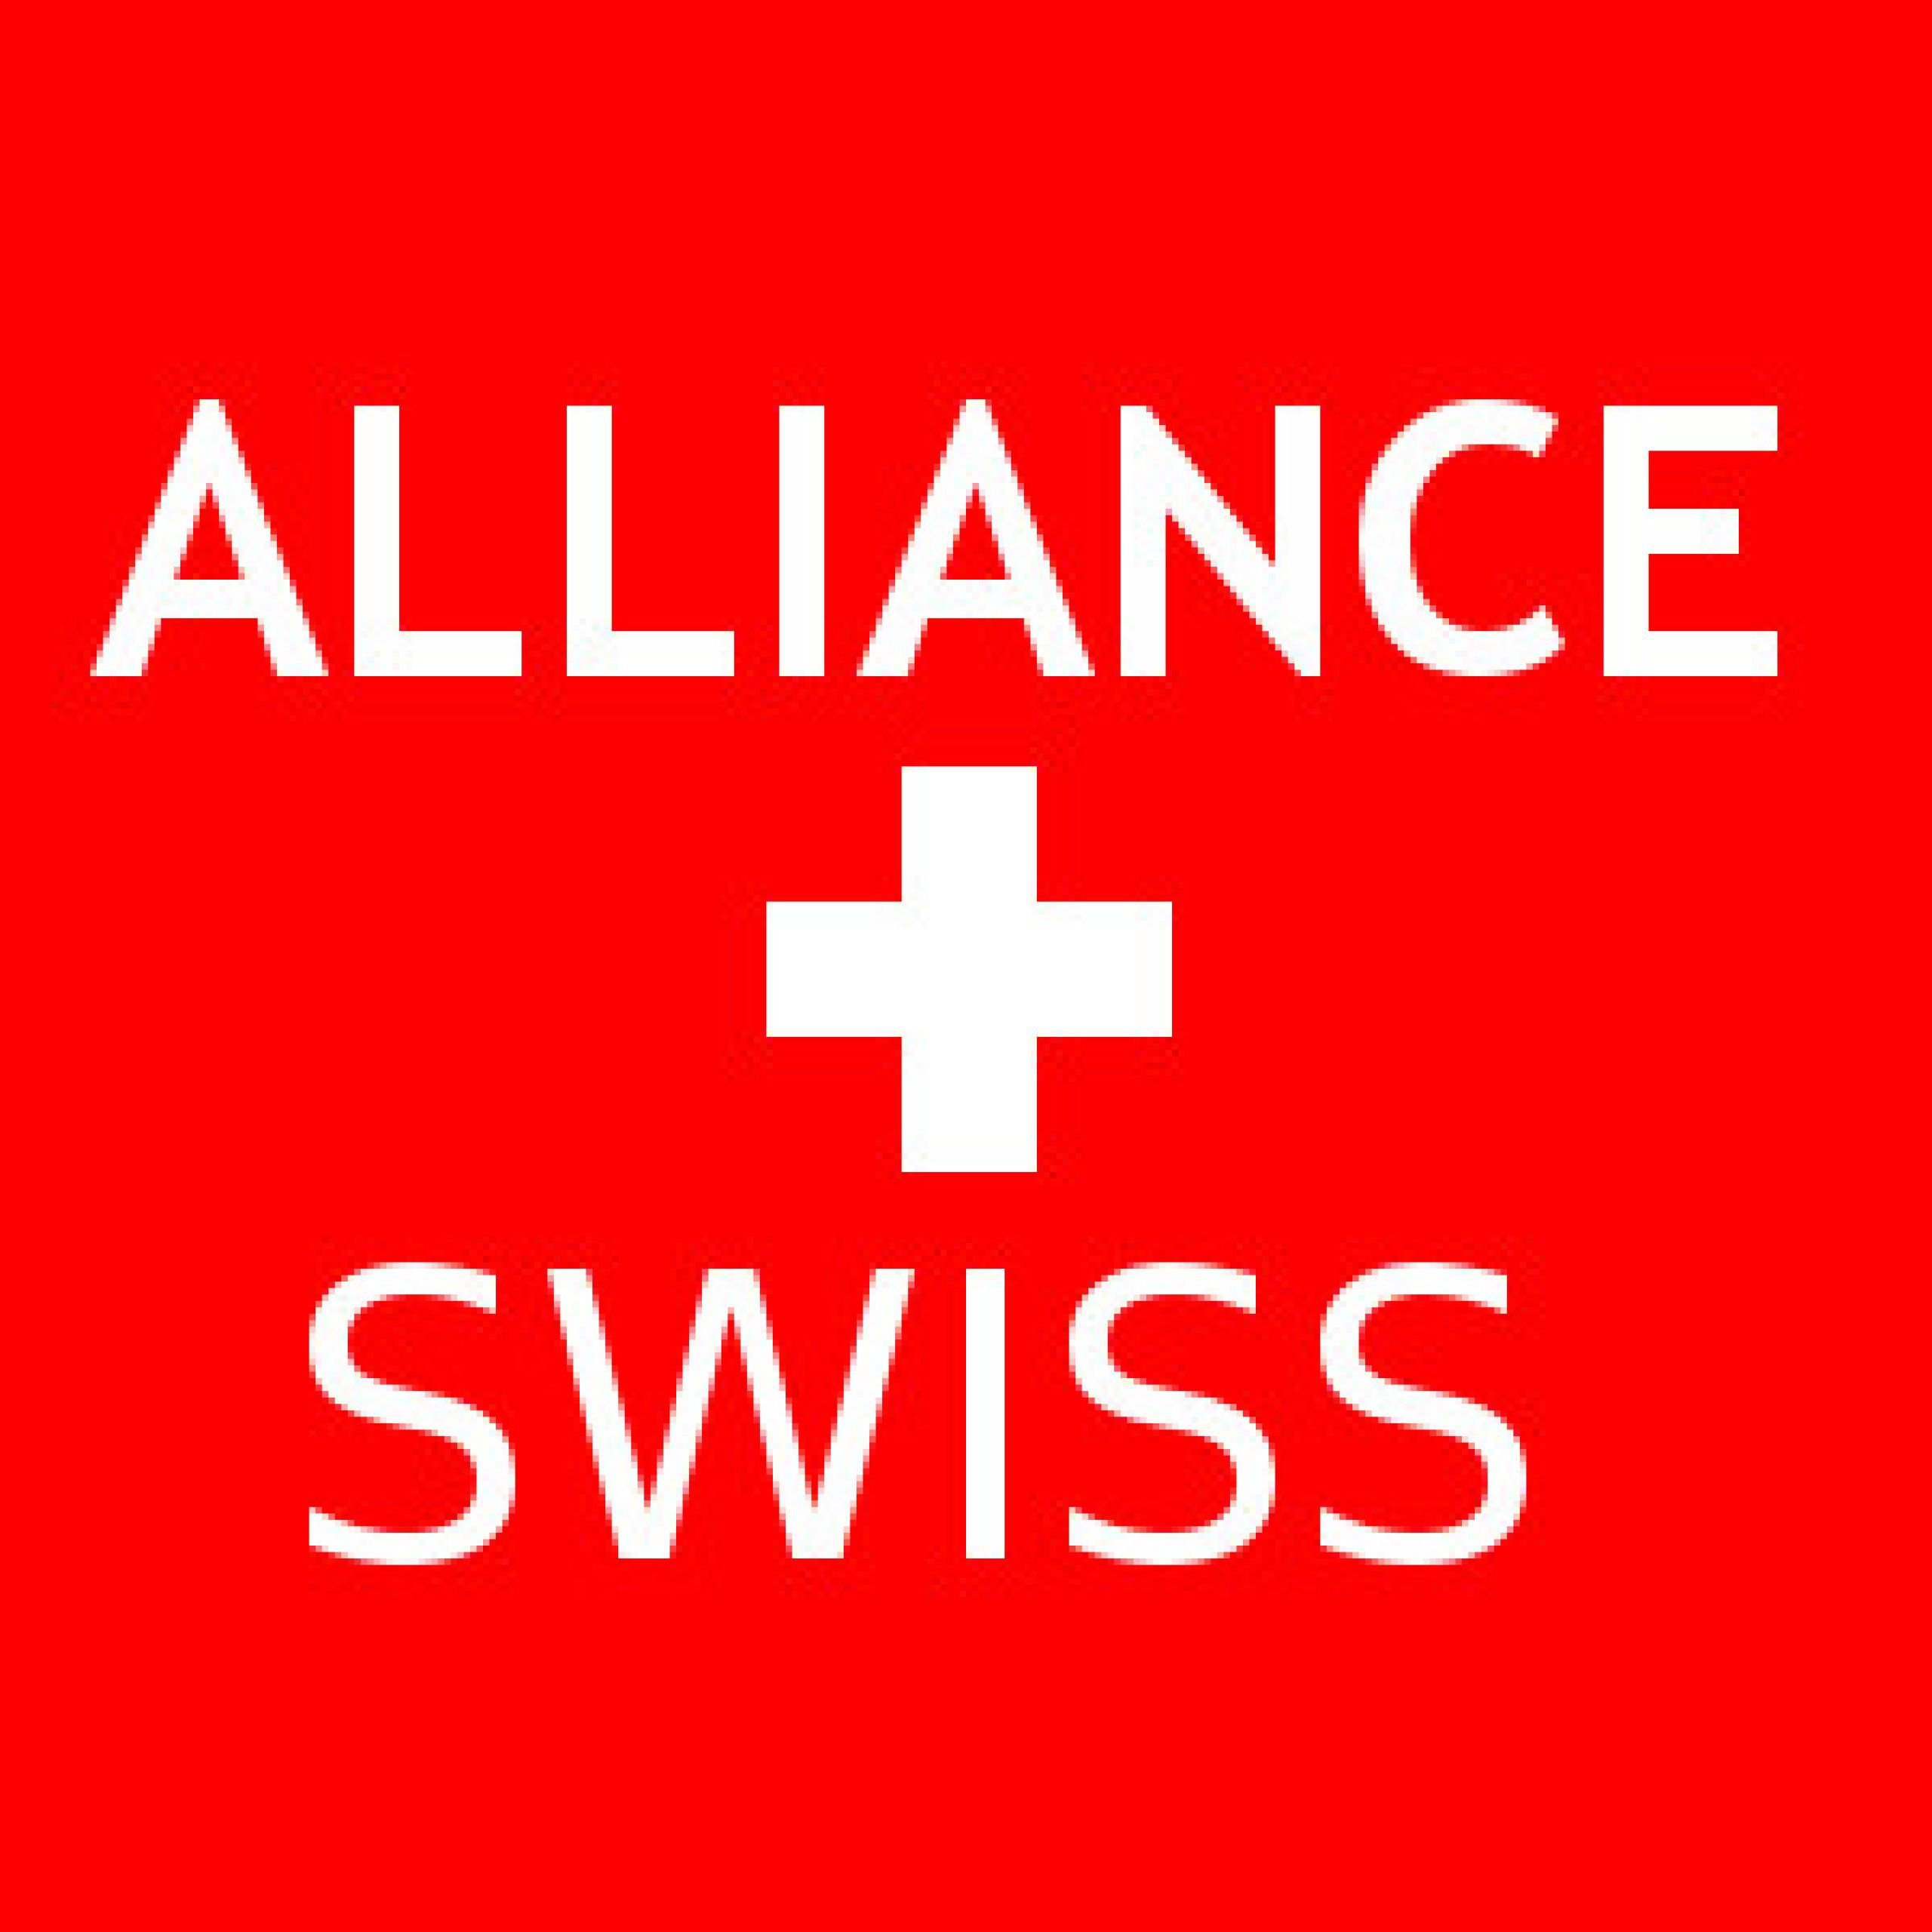 Alliance Swiss